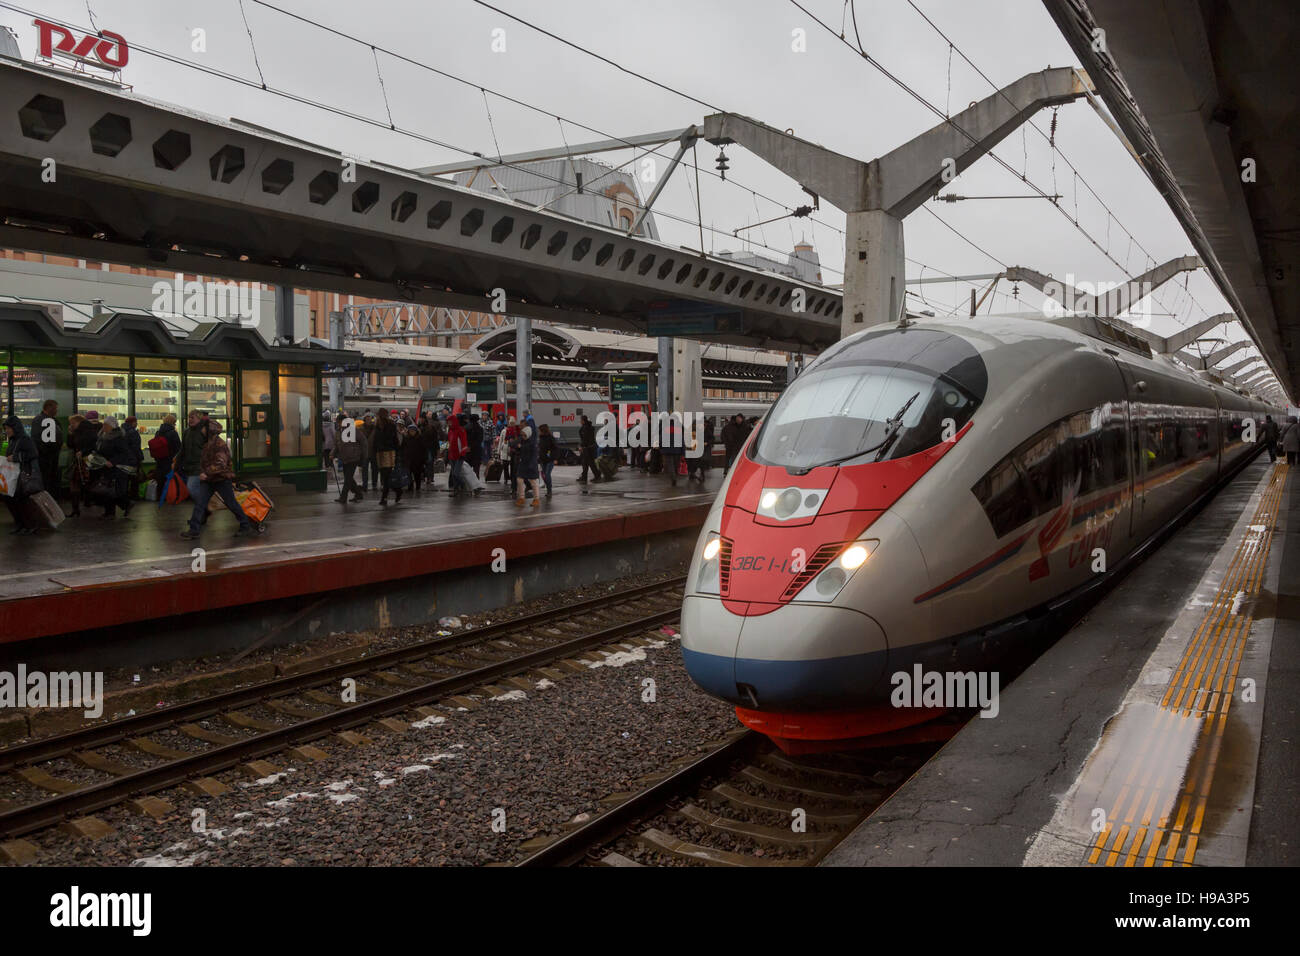 "The modern high-speed train ""Sapsan"" at the platform of the Moscow station in Saint Petersburg city, Russia Stock Photo"